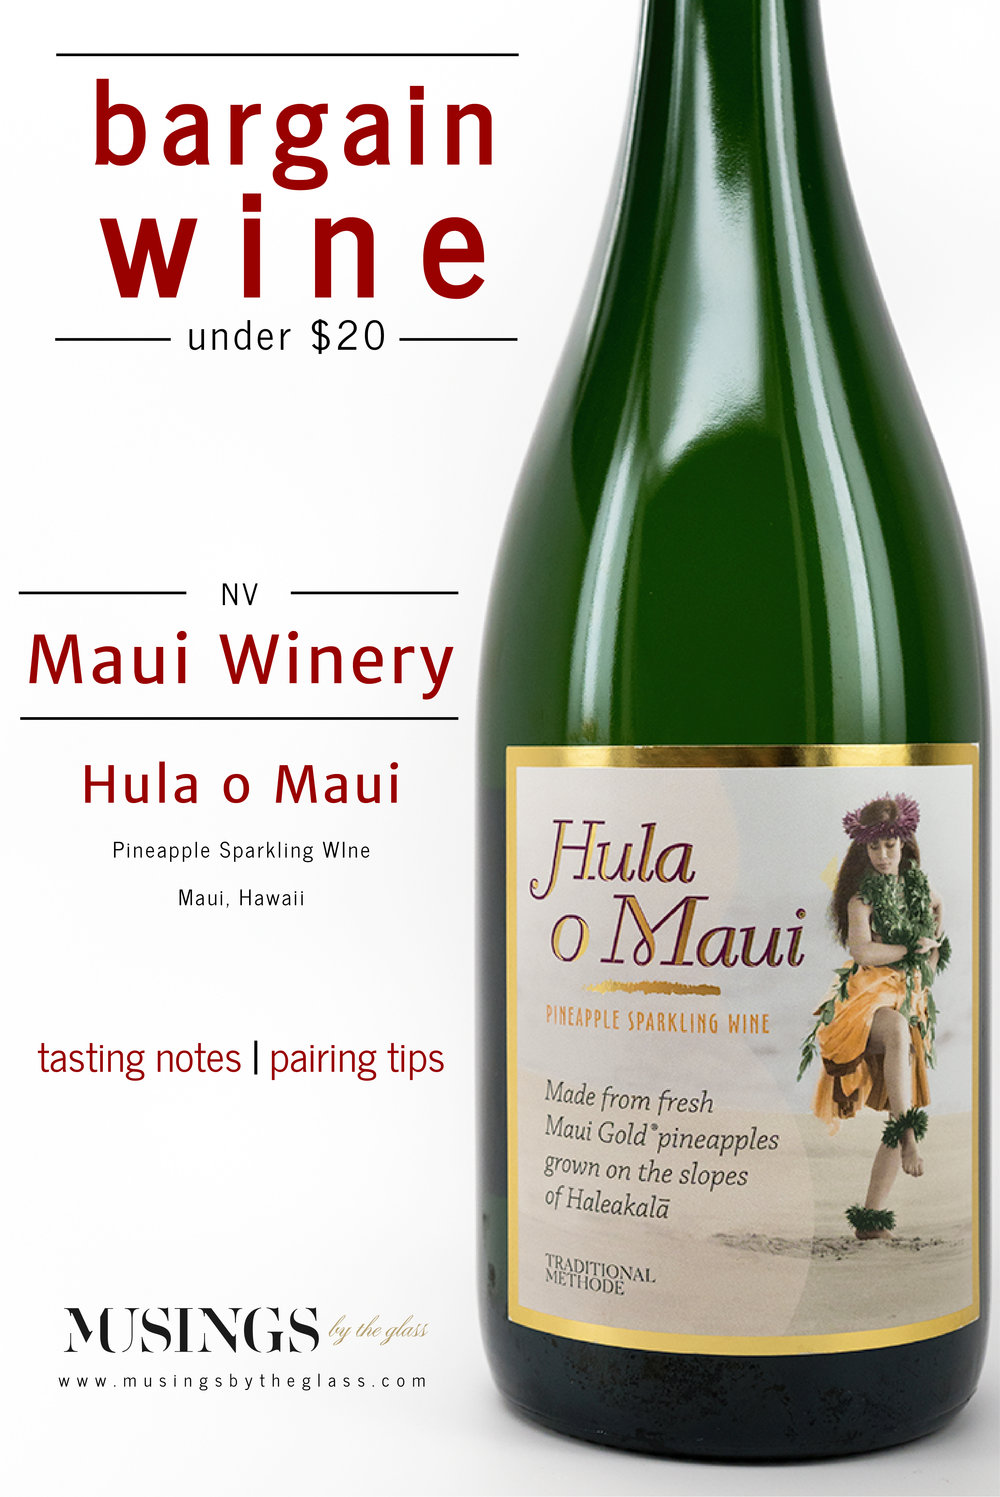 Musings by the Glass - Bargain Wines - Maui Winery Hula o Maui Pineapple Sparkling Wine from Maui, Hawaii